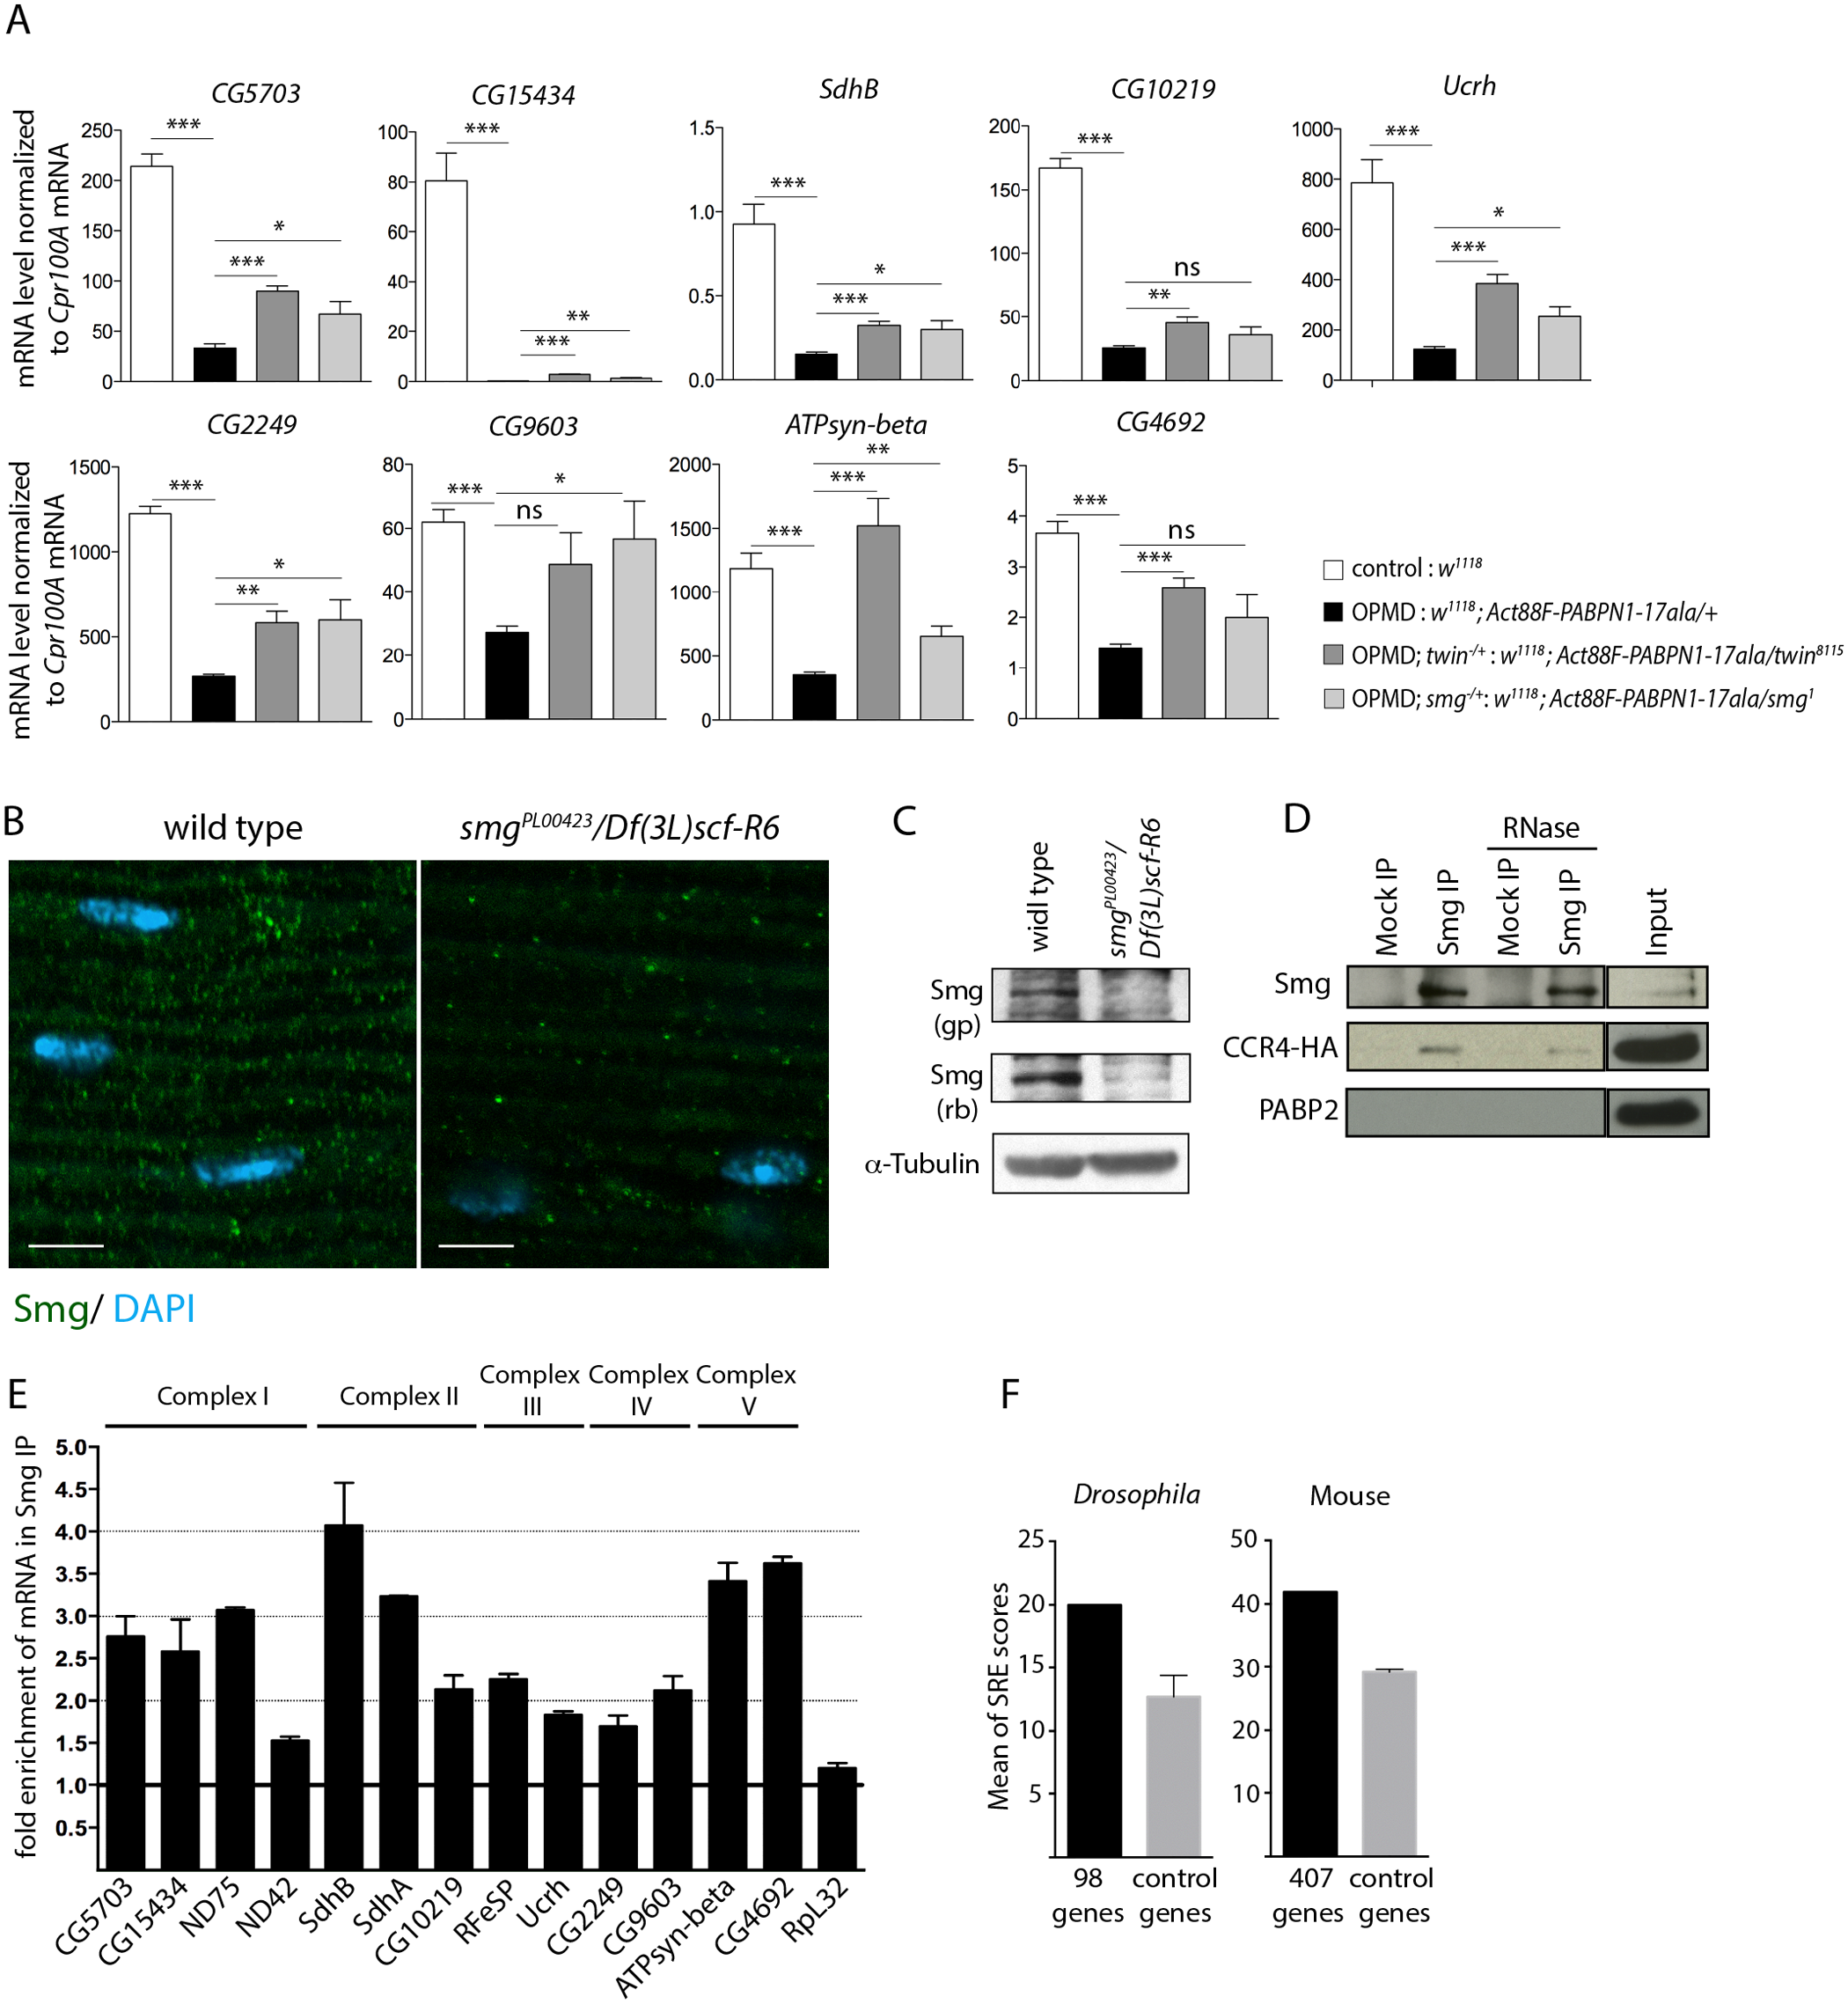 Smg binds to mRNAs encoding mitochondrial proteins and is involved in mRNA down-regulation due to PABPN1-17ala expression.